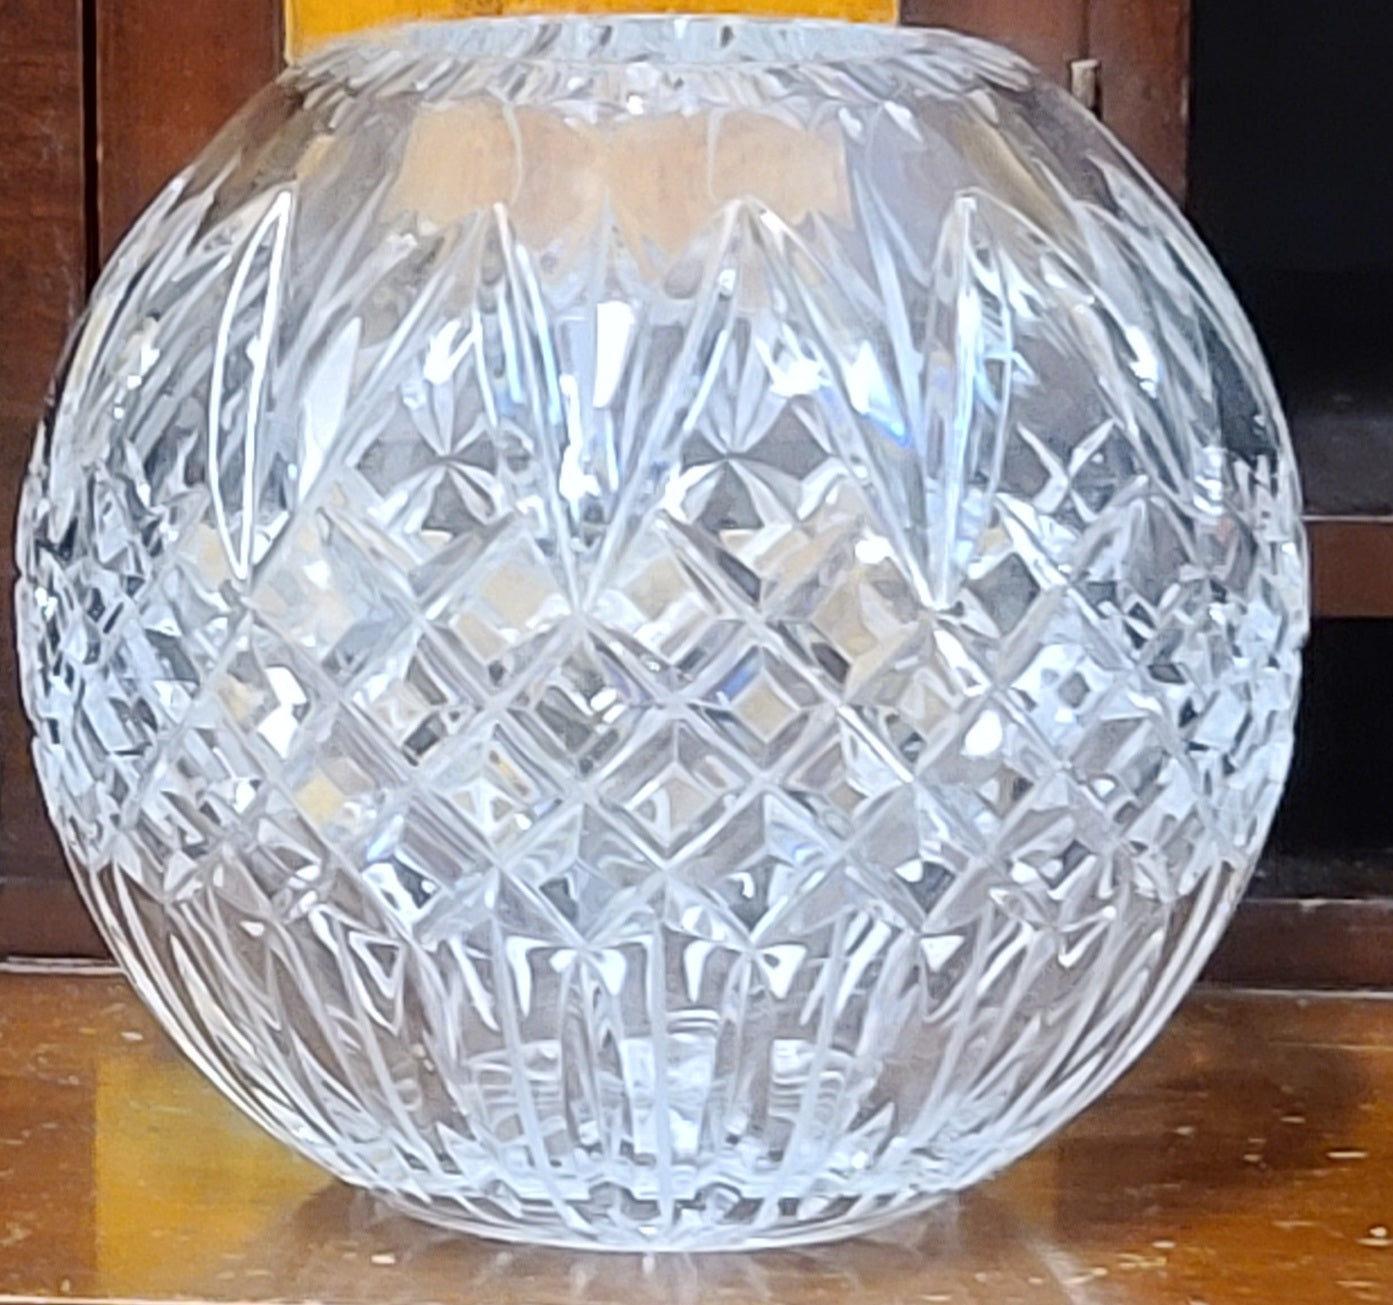 Ceska glass orb vase